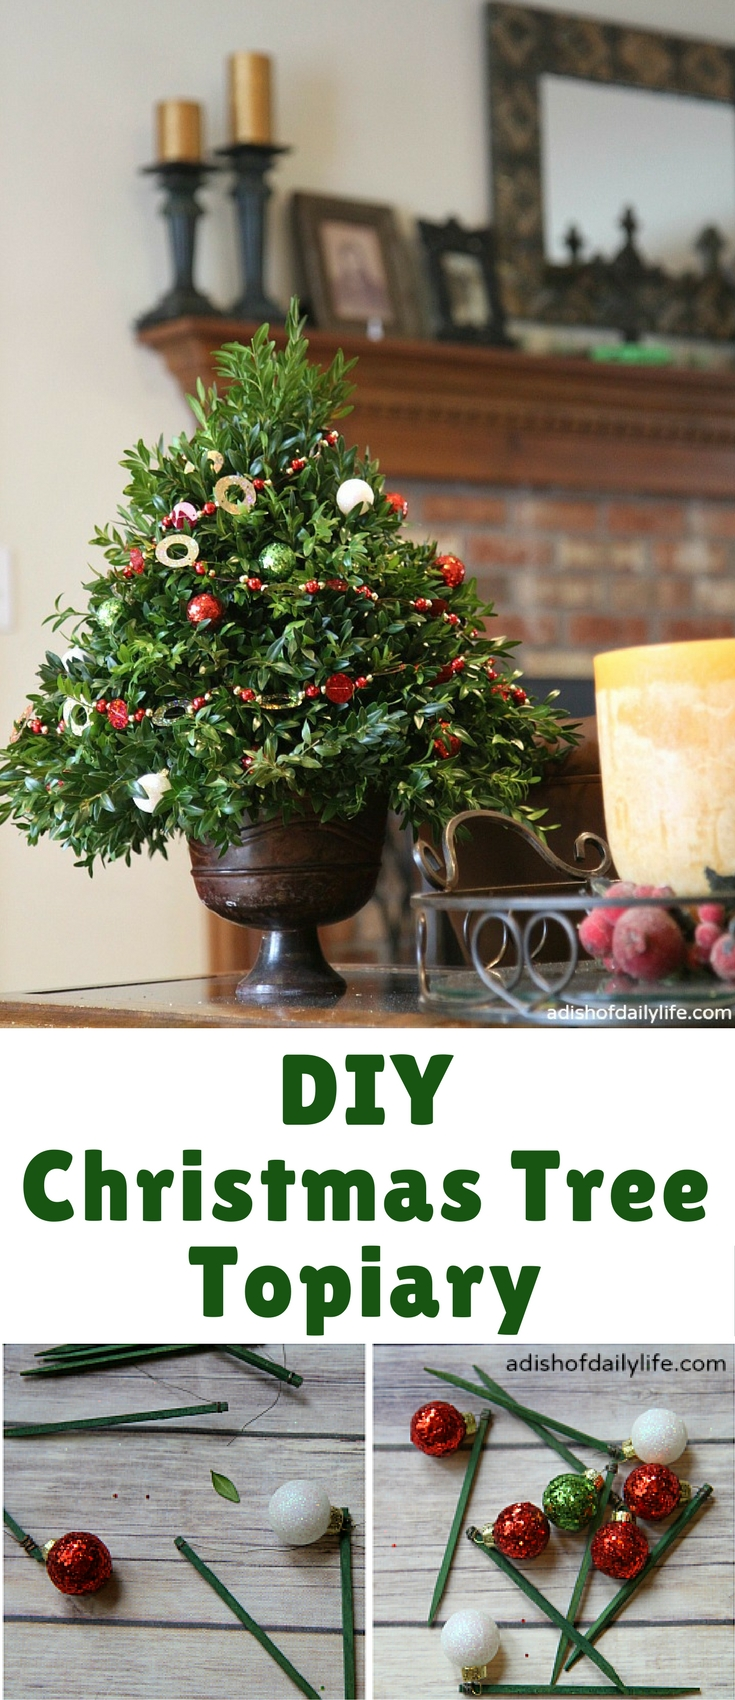 This festive DIY Christmas Tree Topiary is perfect as a hostess gift or for holiday decorating!